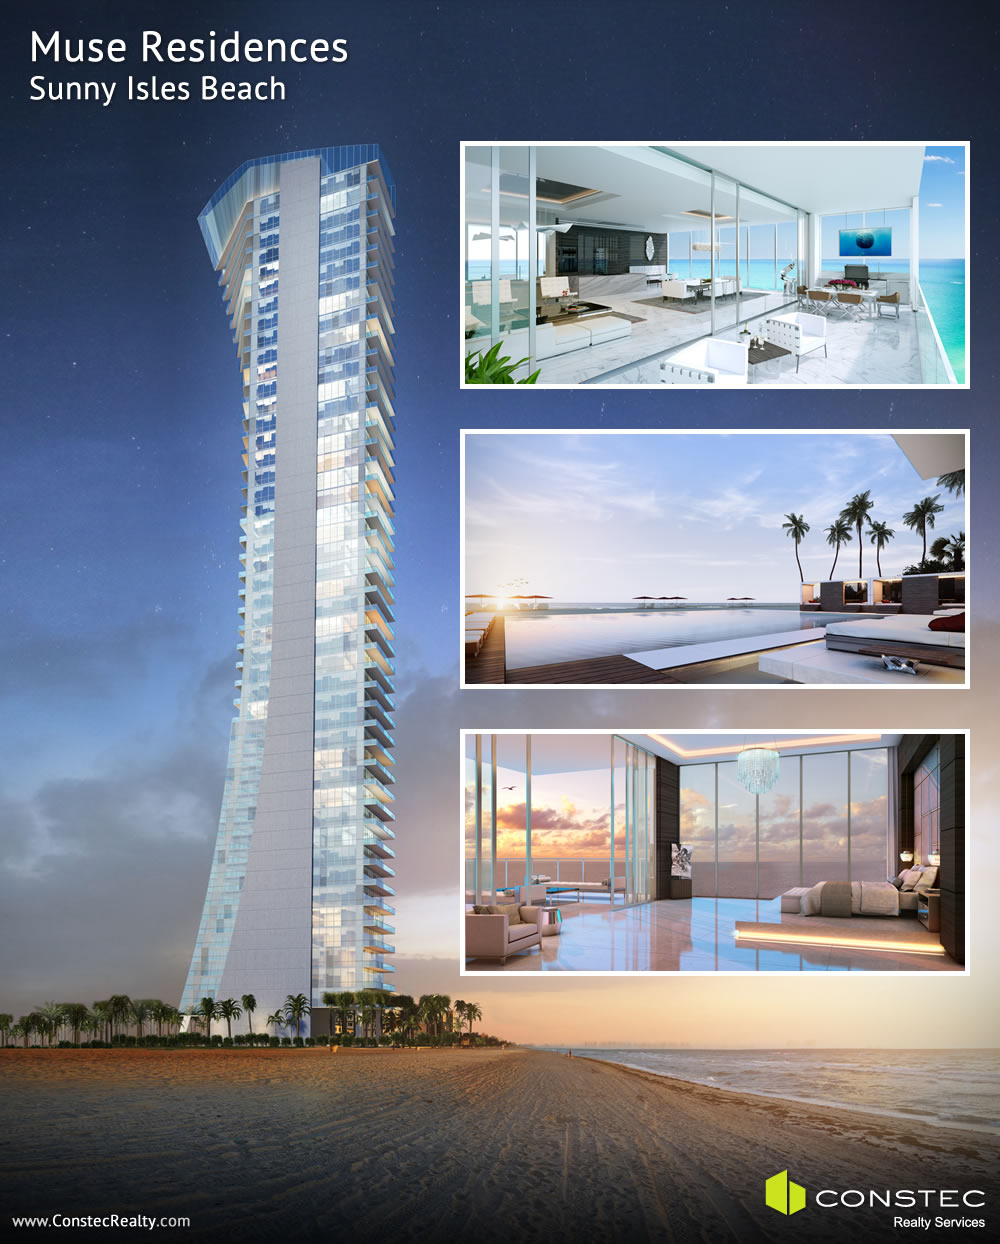 Muse Residences - luxury condos in Sunny Isles